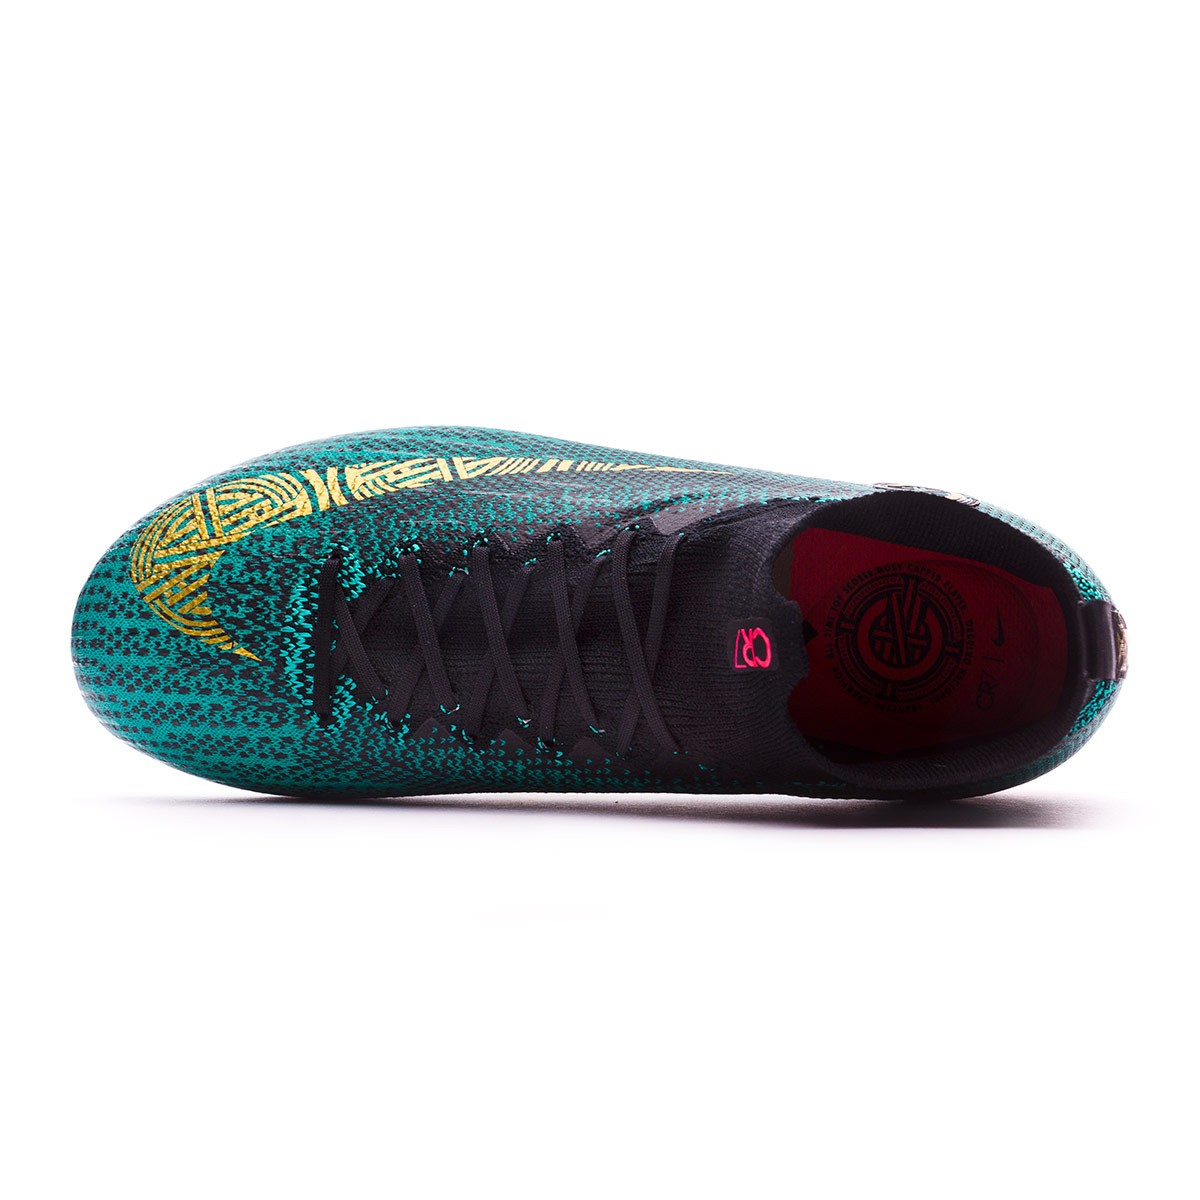 4b56f9569 Football Boots Nike Kids Mercurial Superfly VI Elite CR7 FG Clear jade-Metallic  vivid gold-Black - Tienda de fútbol Fútbol Emotion